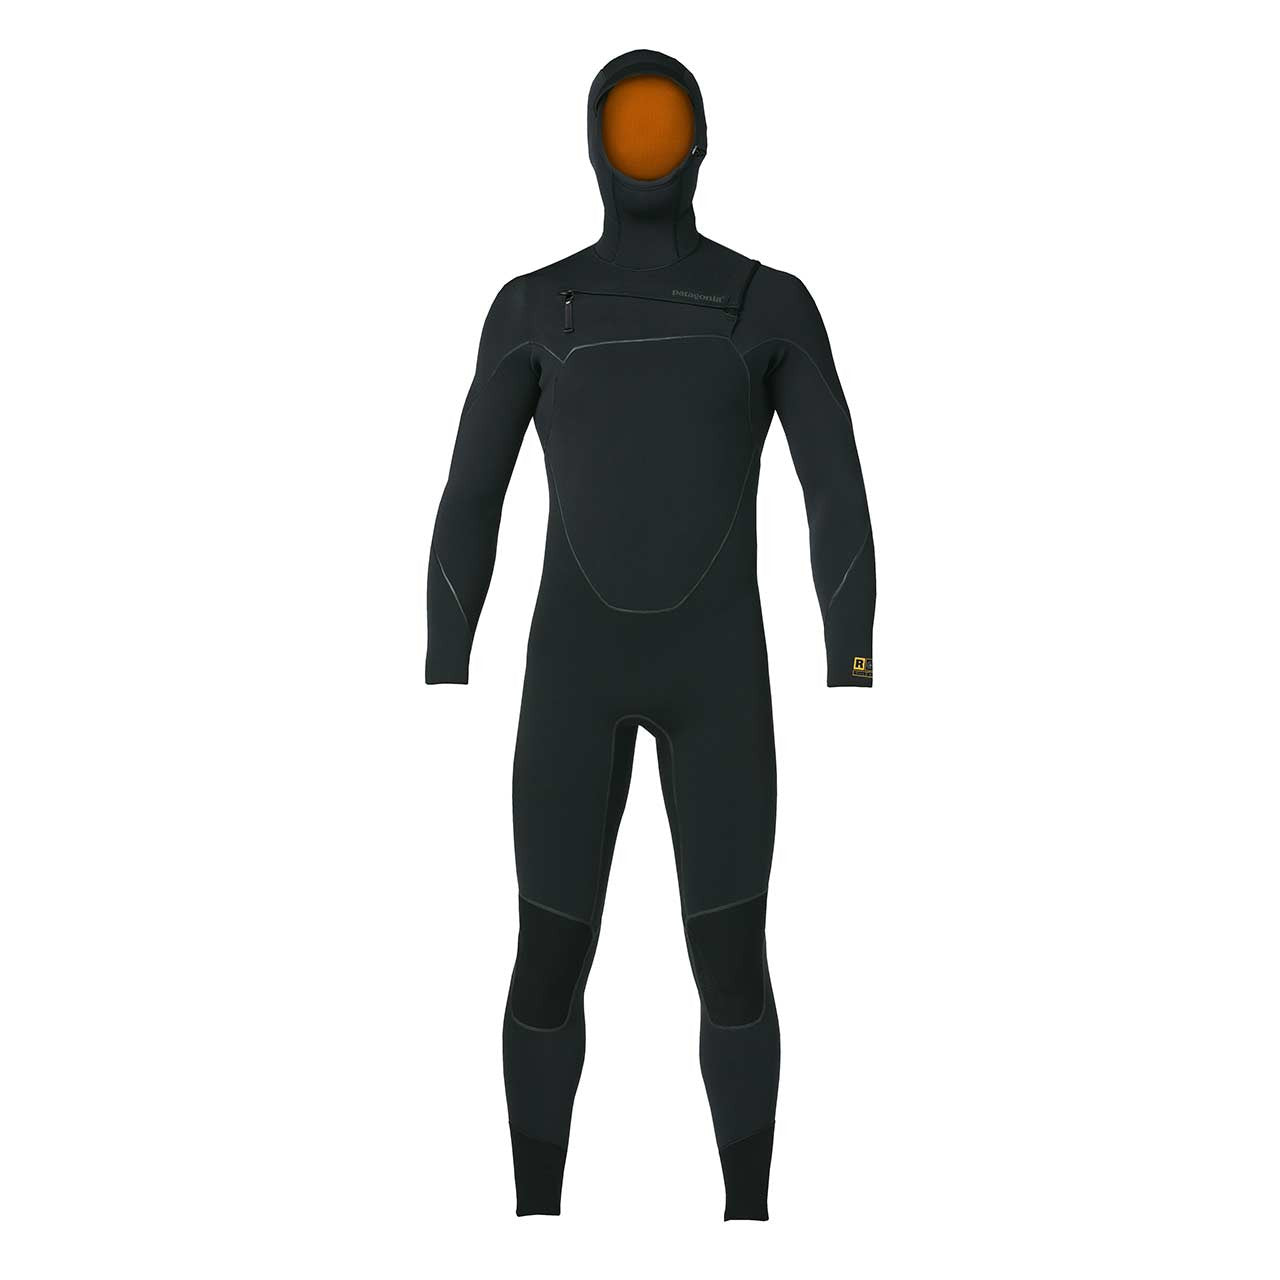 Patagonia_M's R3 Yulex FZ Hooded Full Suit_Black_L